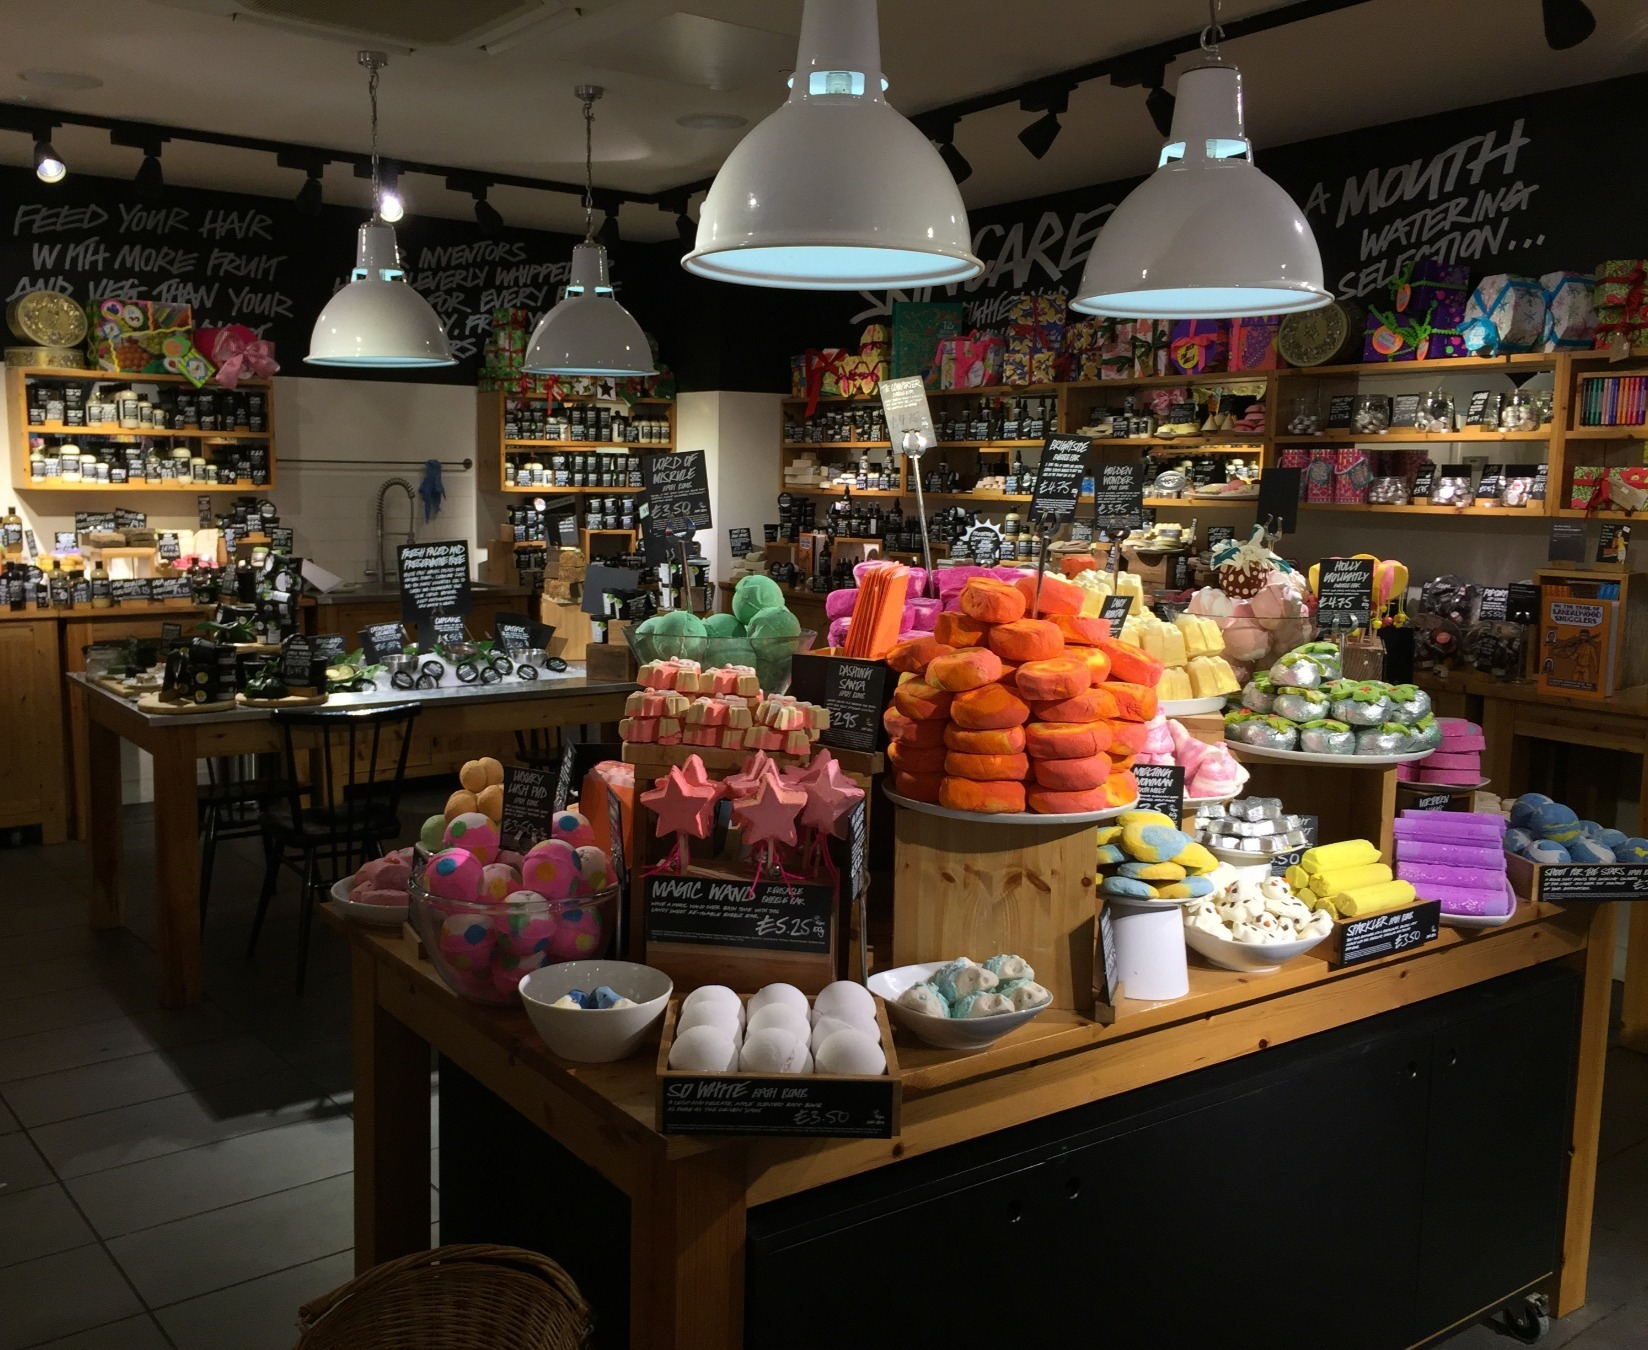 5. Go plastic free with Lush